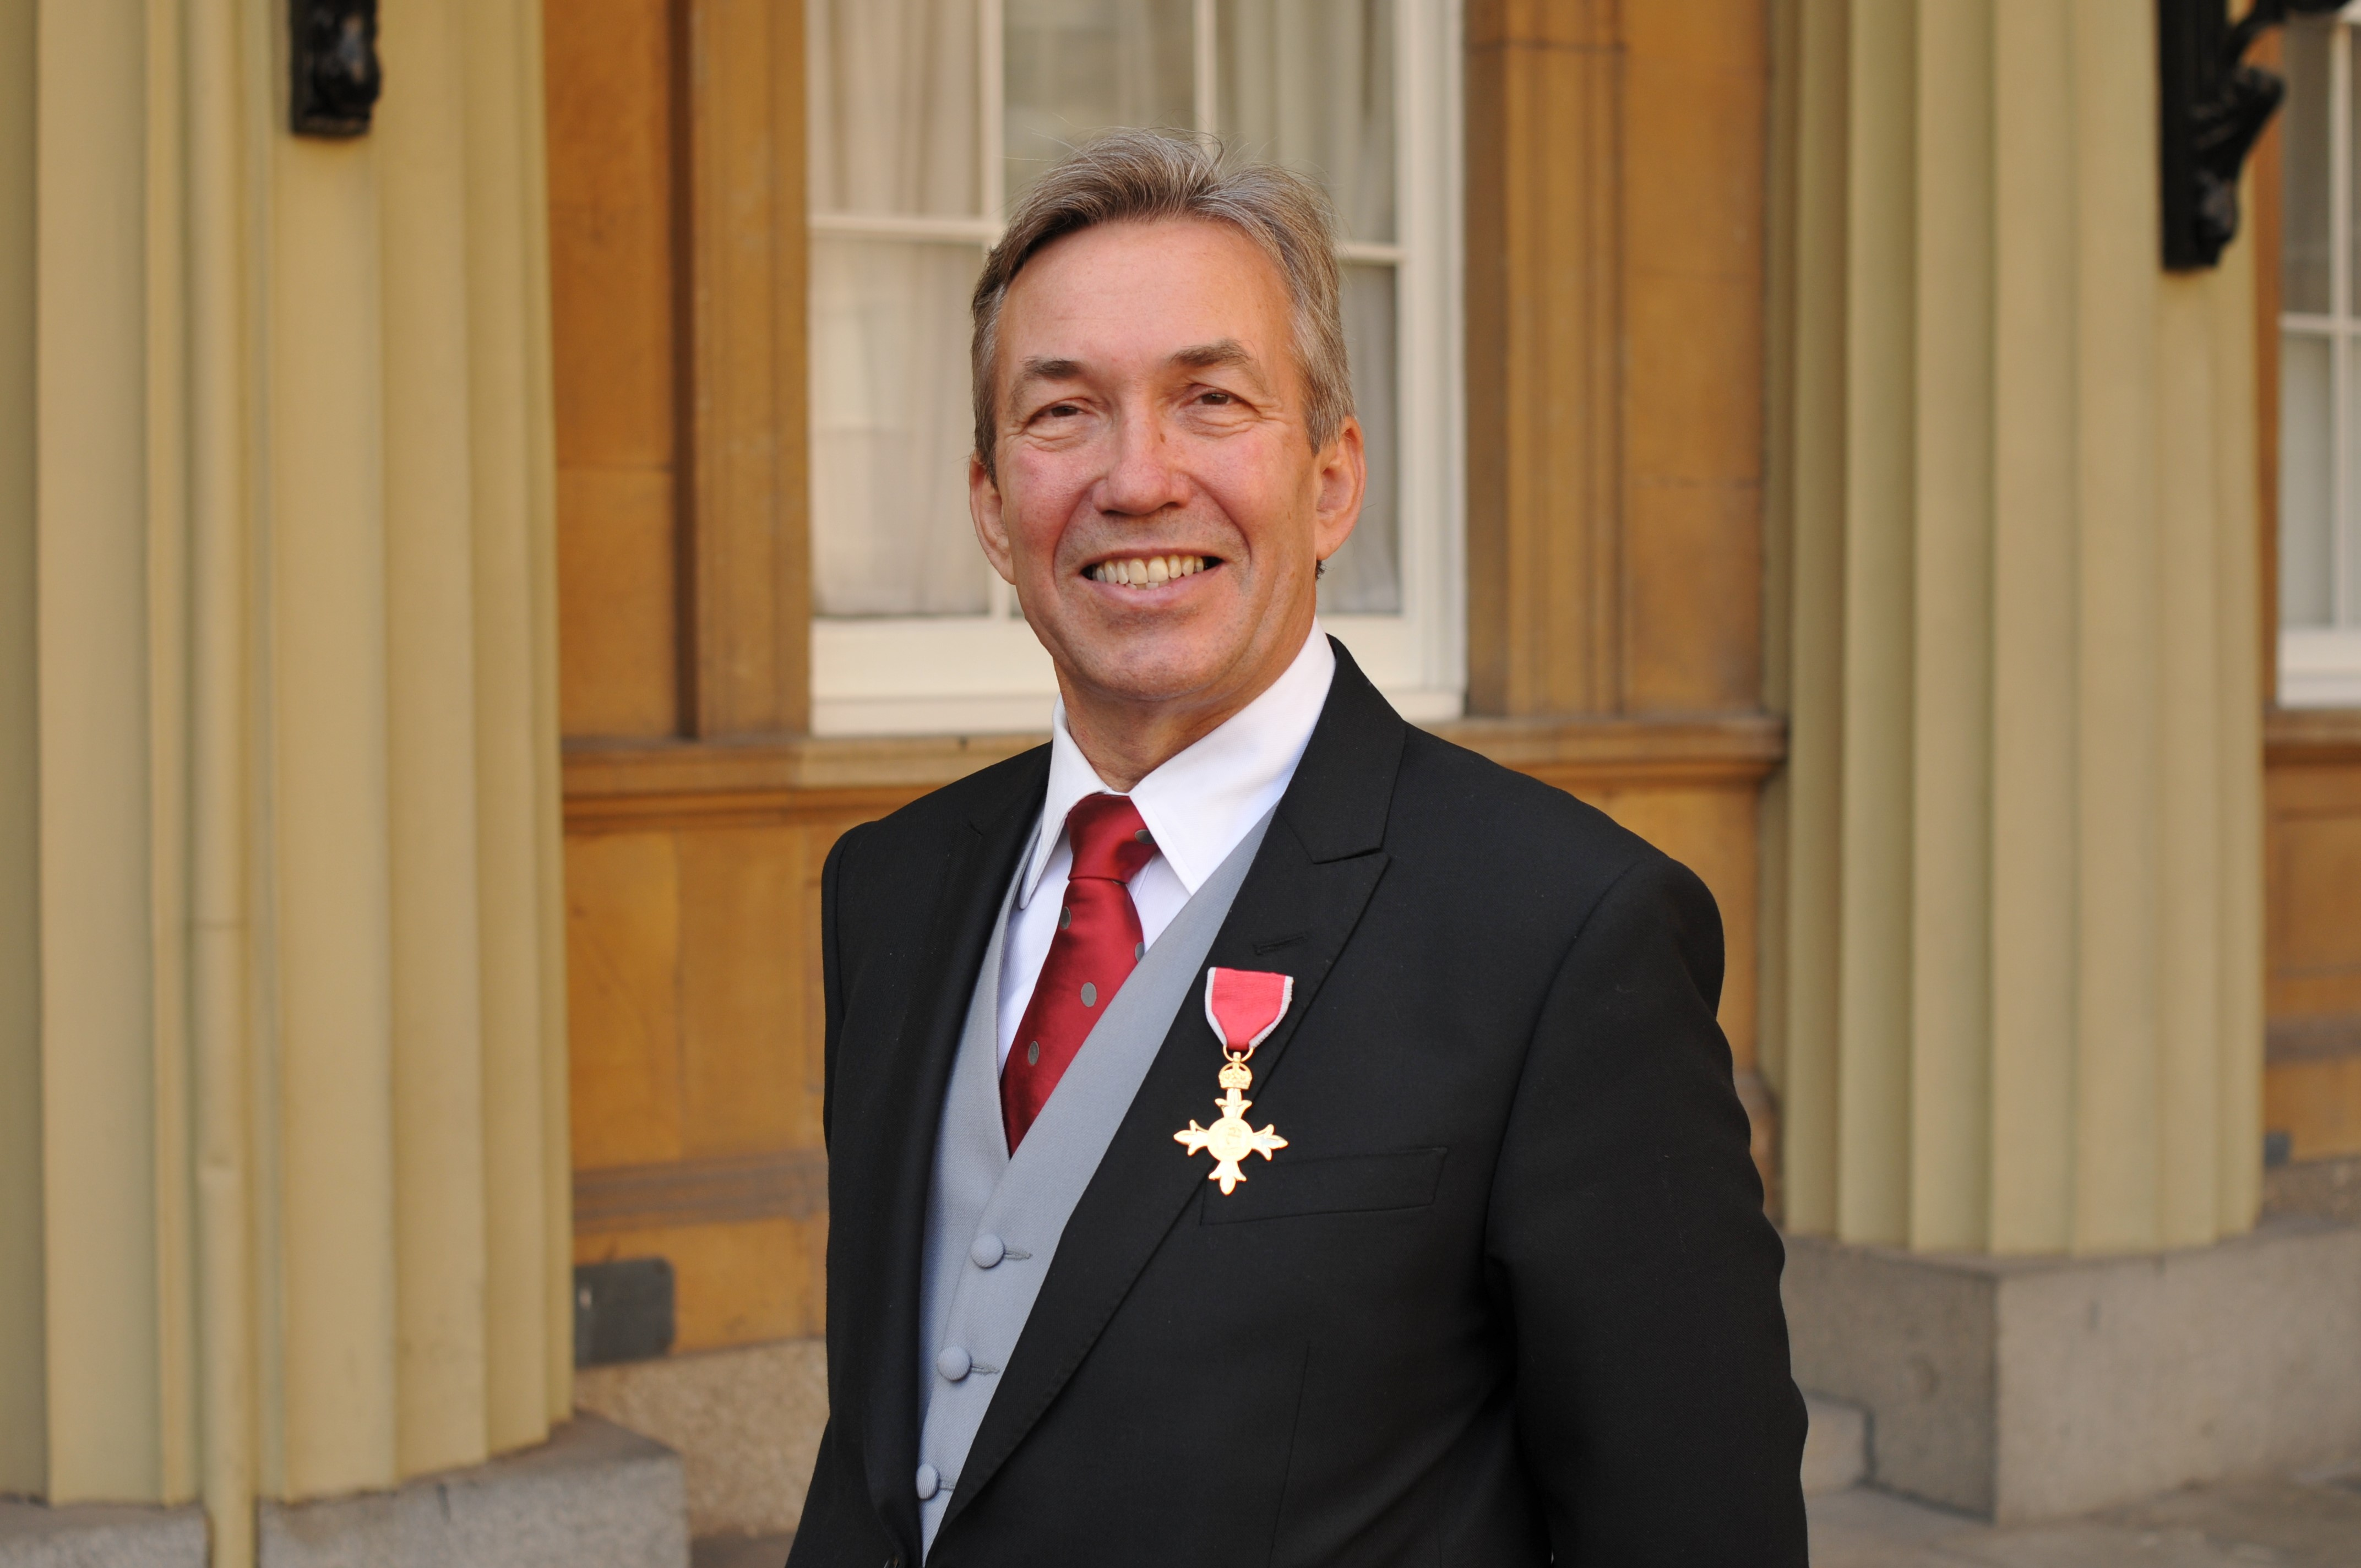 Nick with his OBE